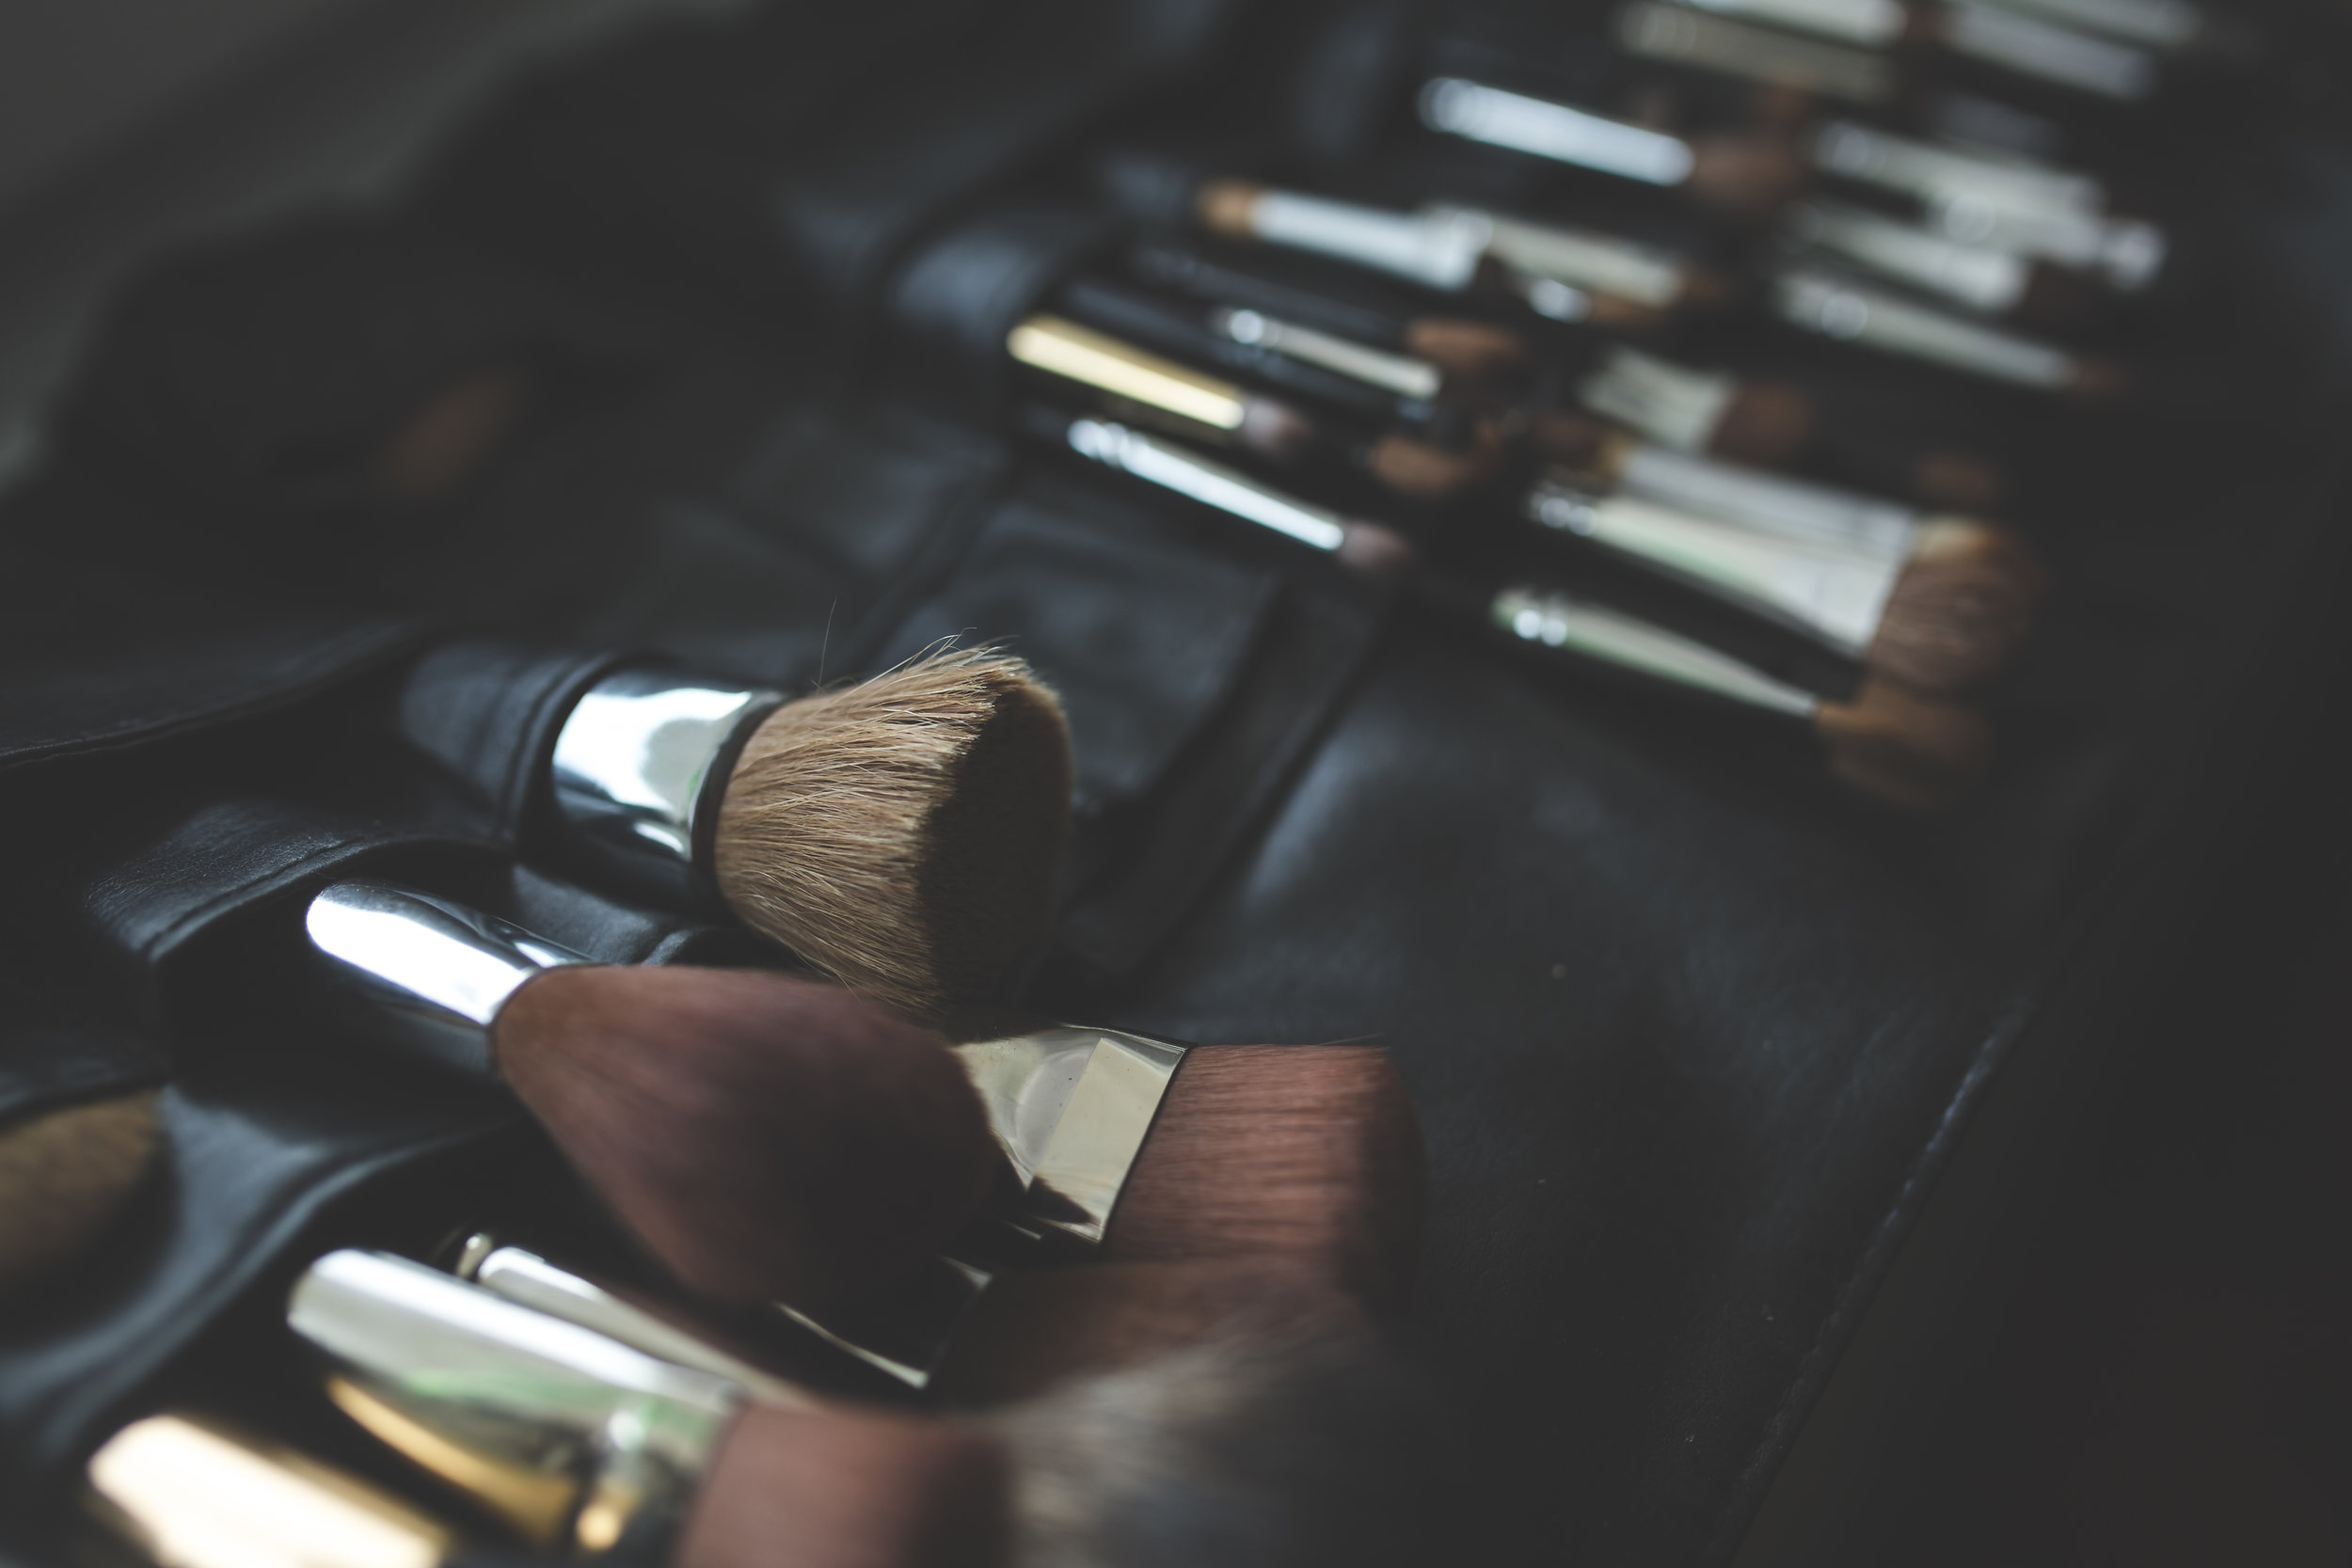 brush-makeup-make-up-brushes.jpg